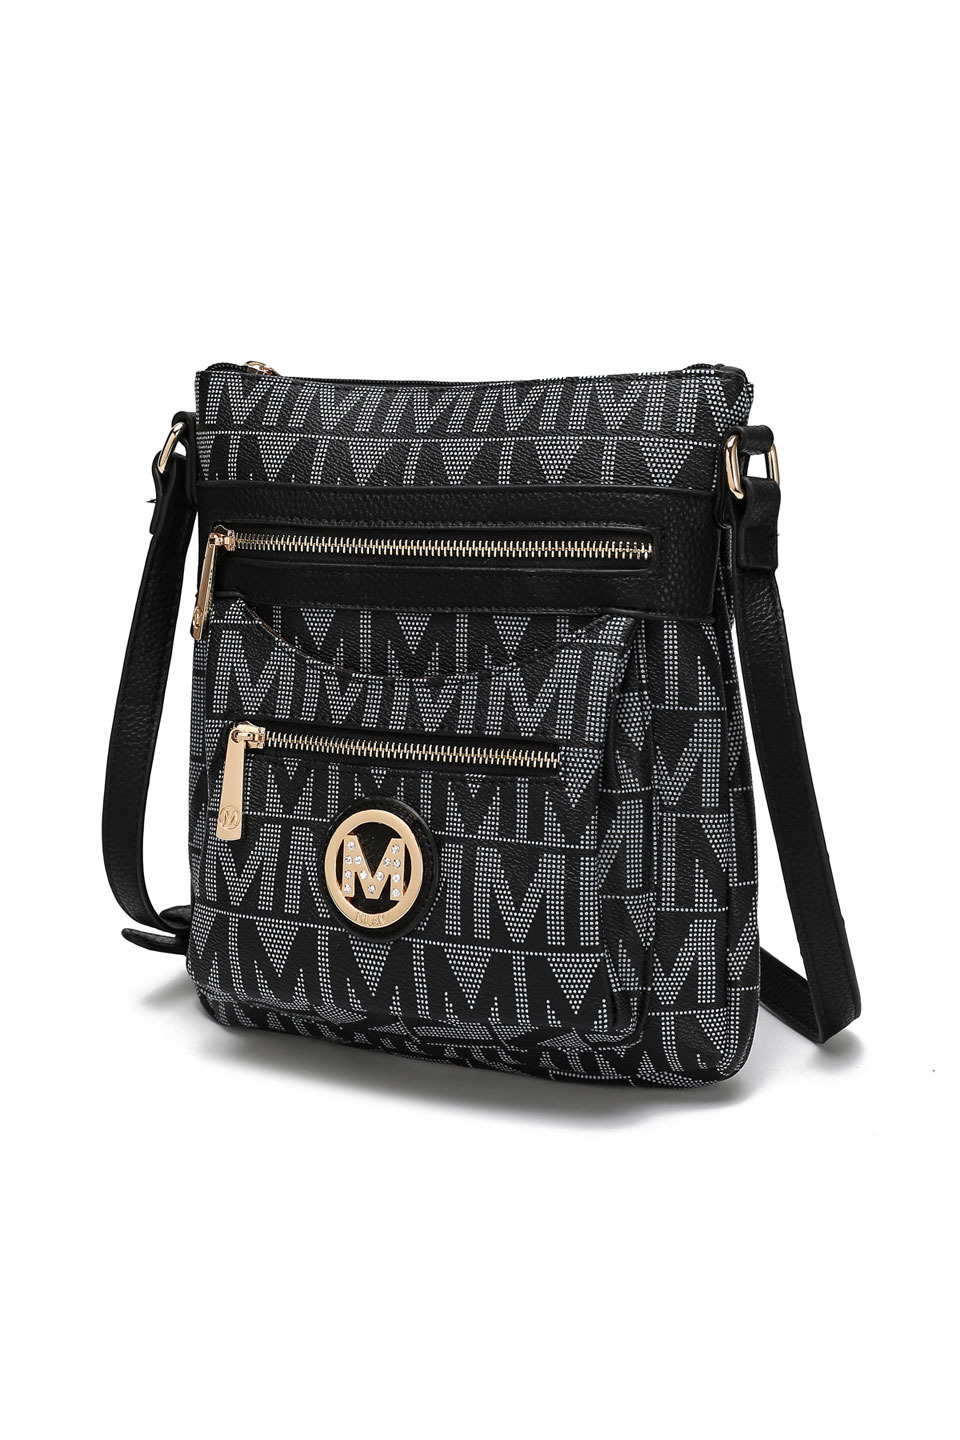 Saniya M Signature Crossbody Bag in Black